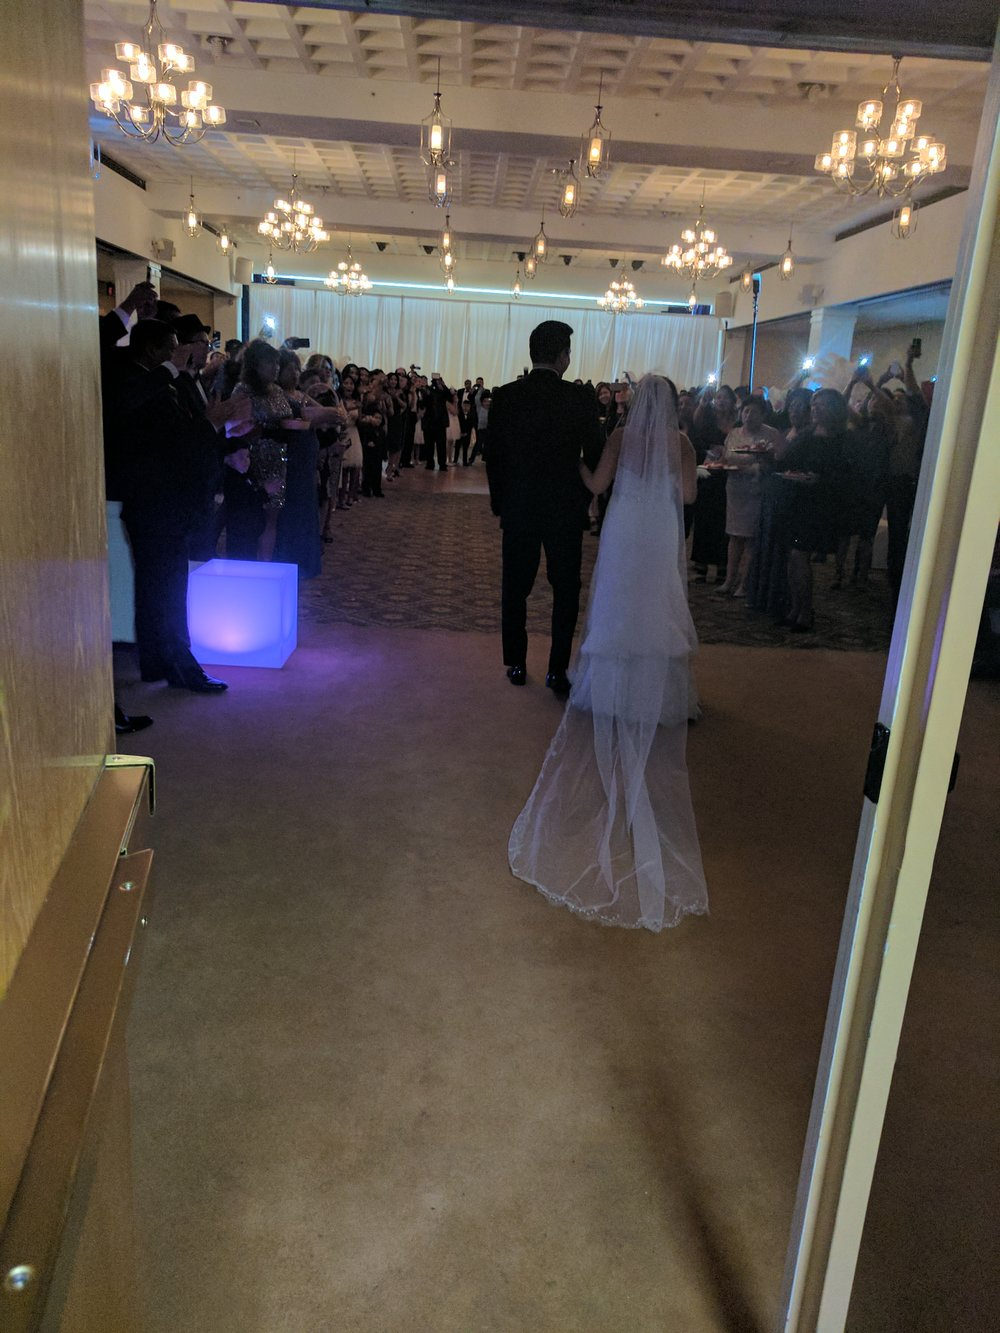 The Bride and Groom making their grand entrance into the reception!